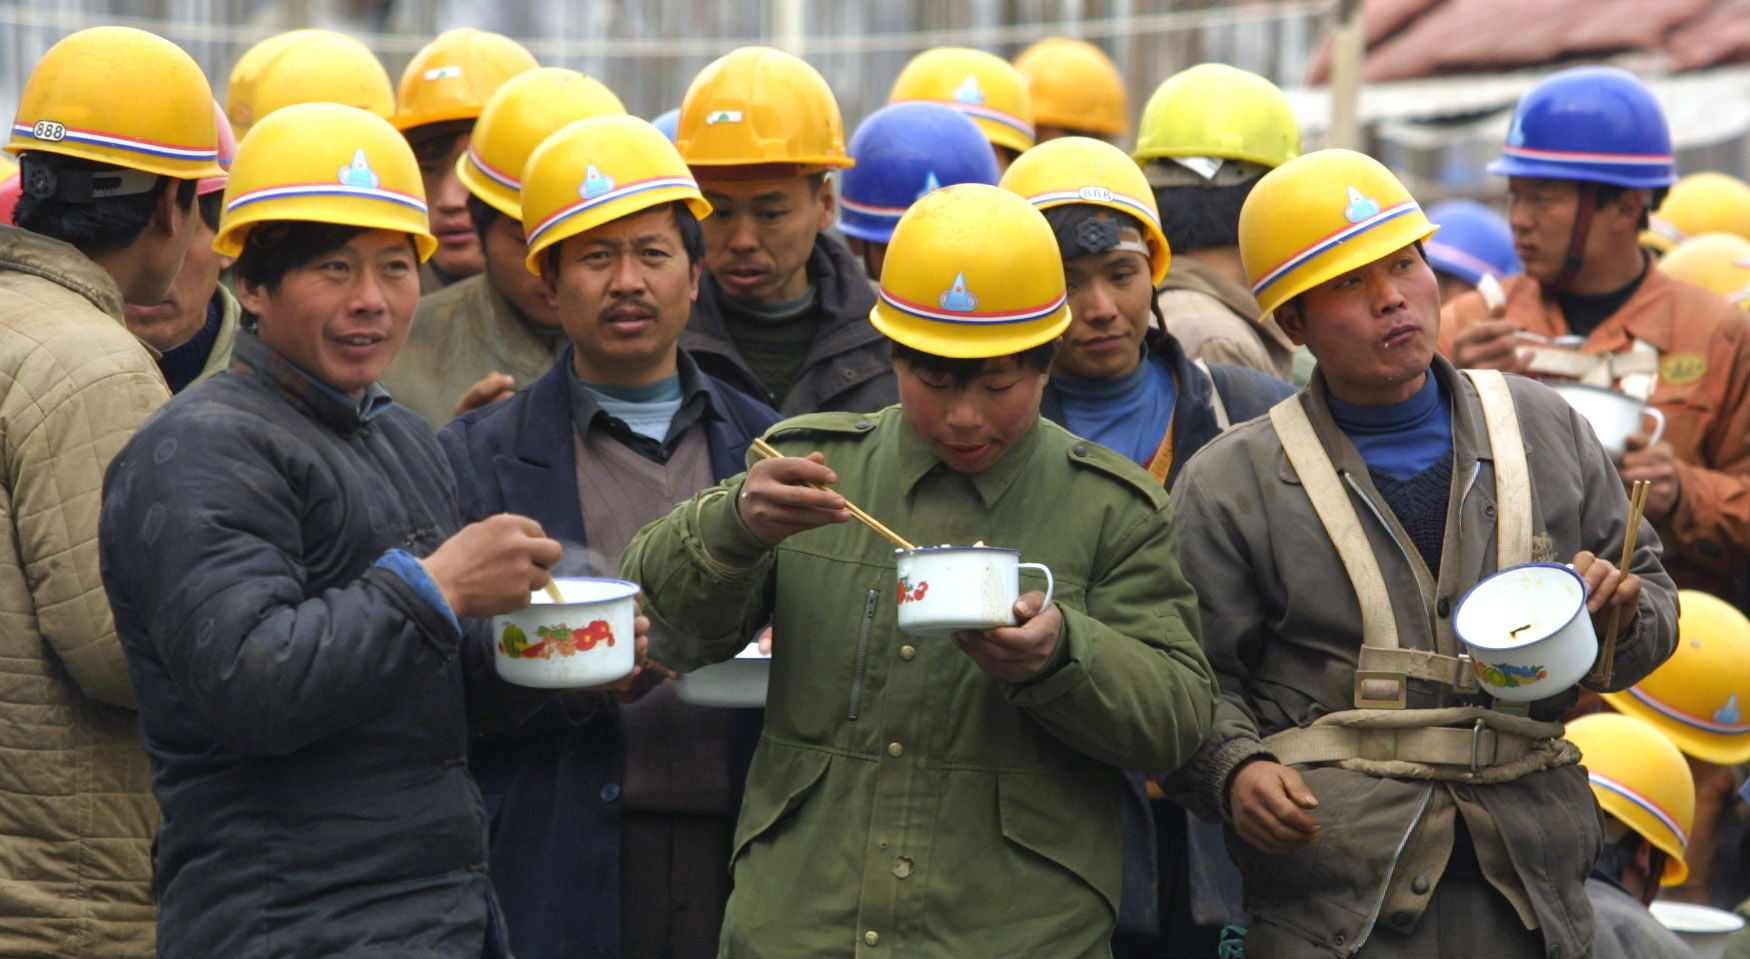 China's migrant labor force, which has propelled the country's rapid economic growth, is now mostly exhausted, economists say. Photo: Bloomberg